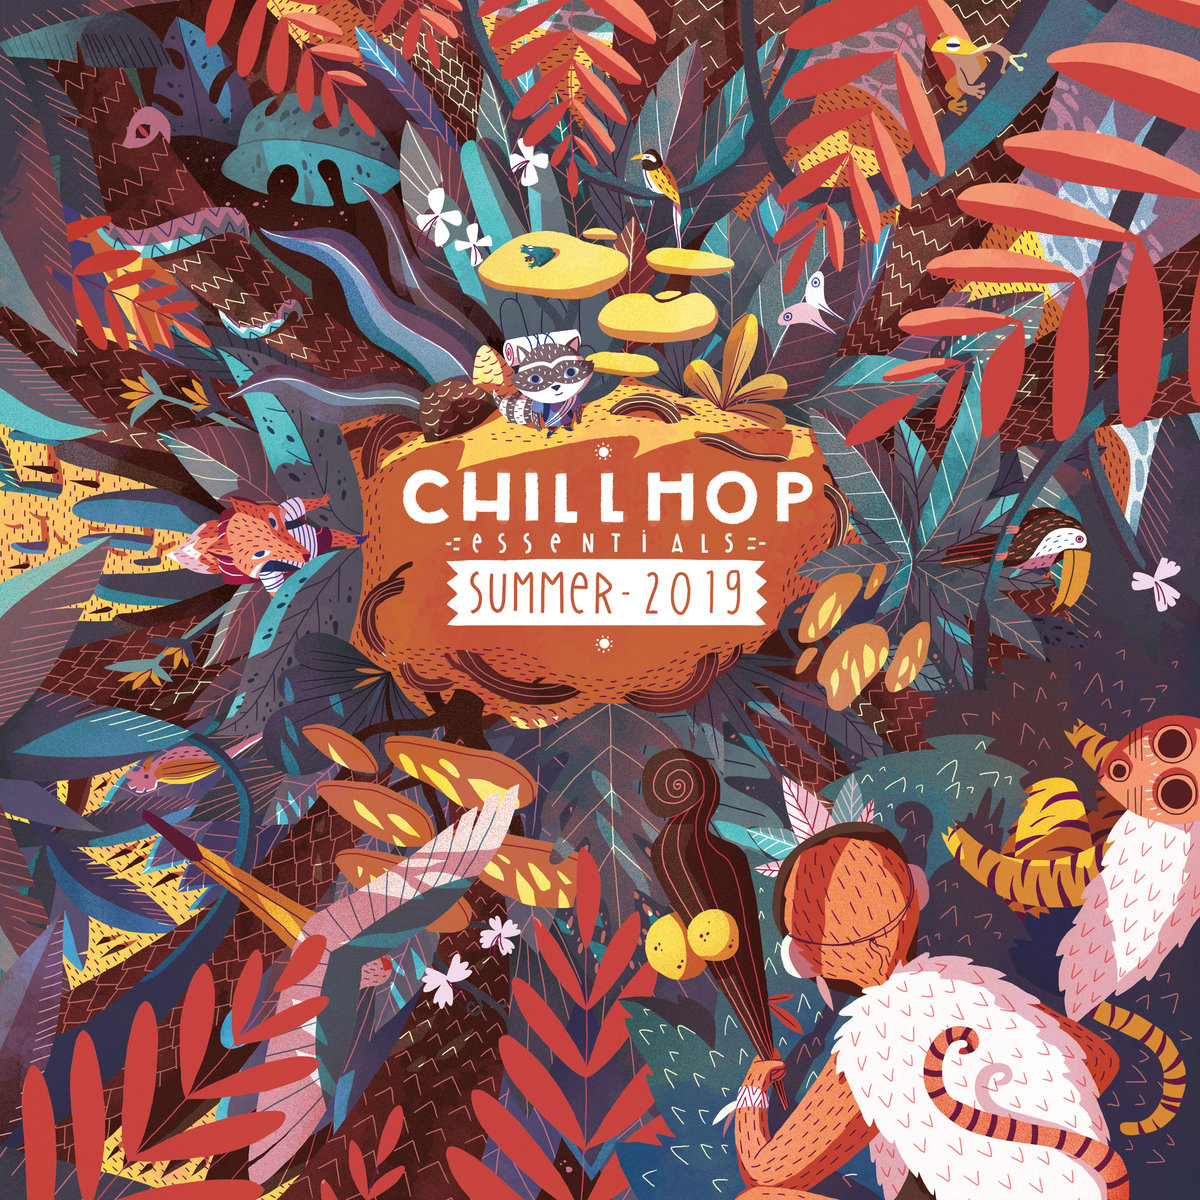 Chillhop Essentials - Summer 2019